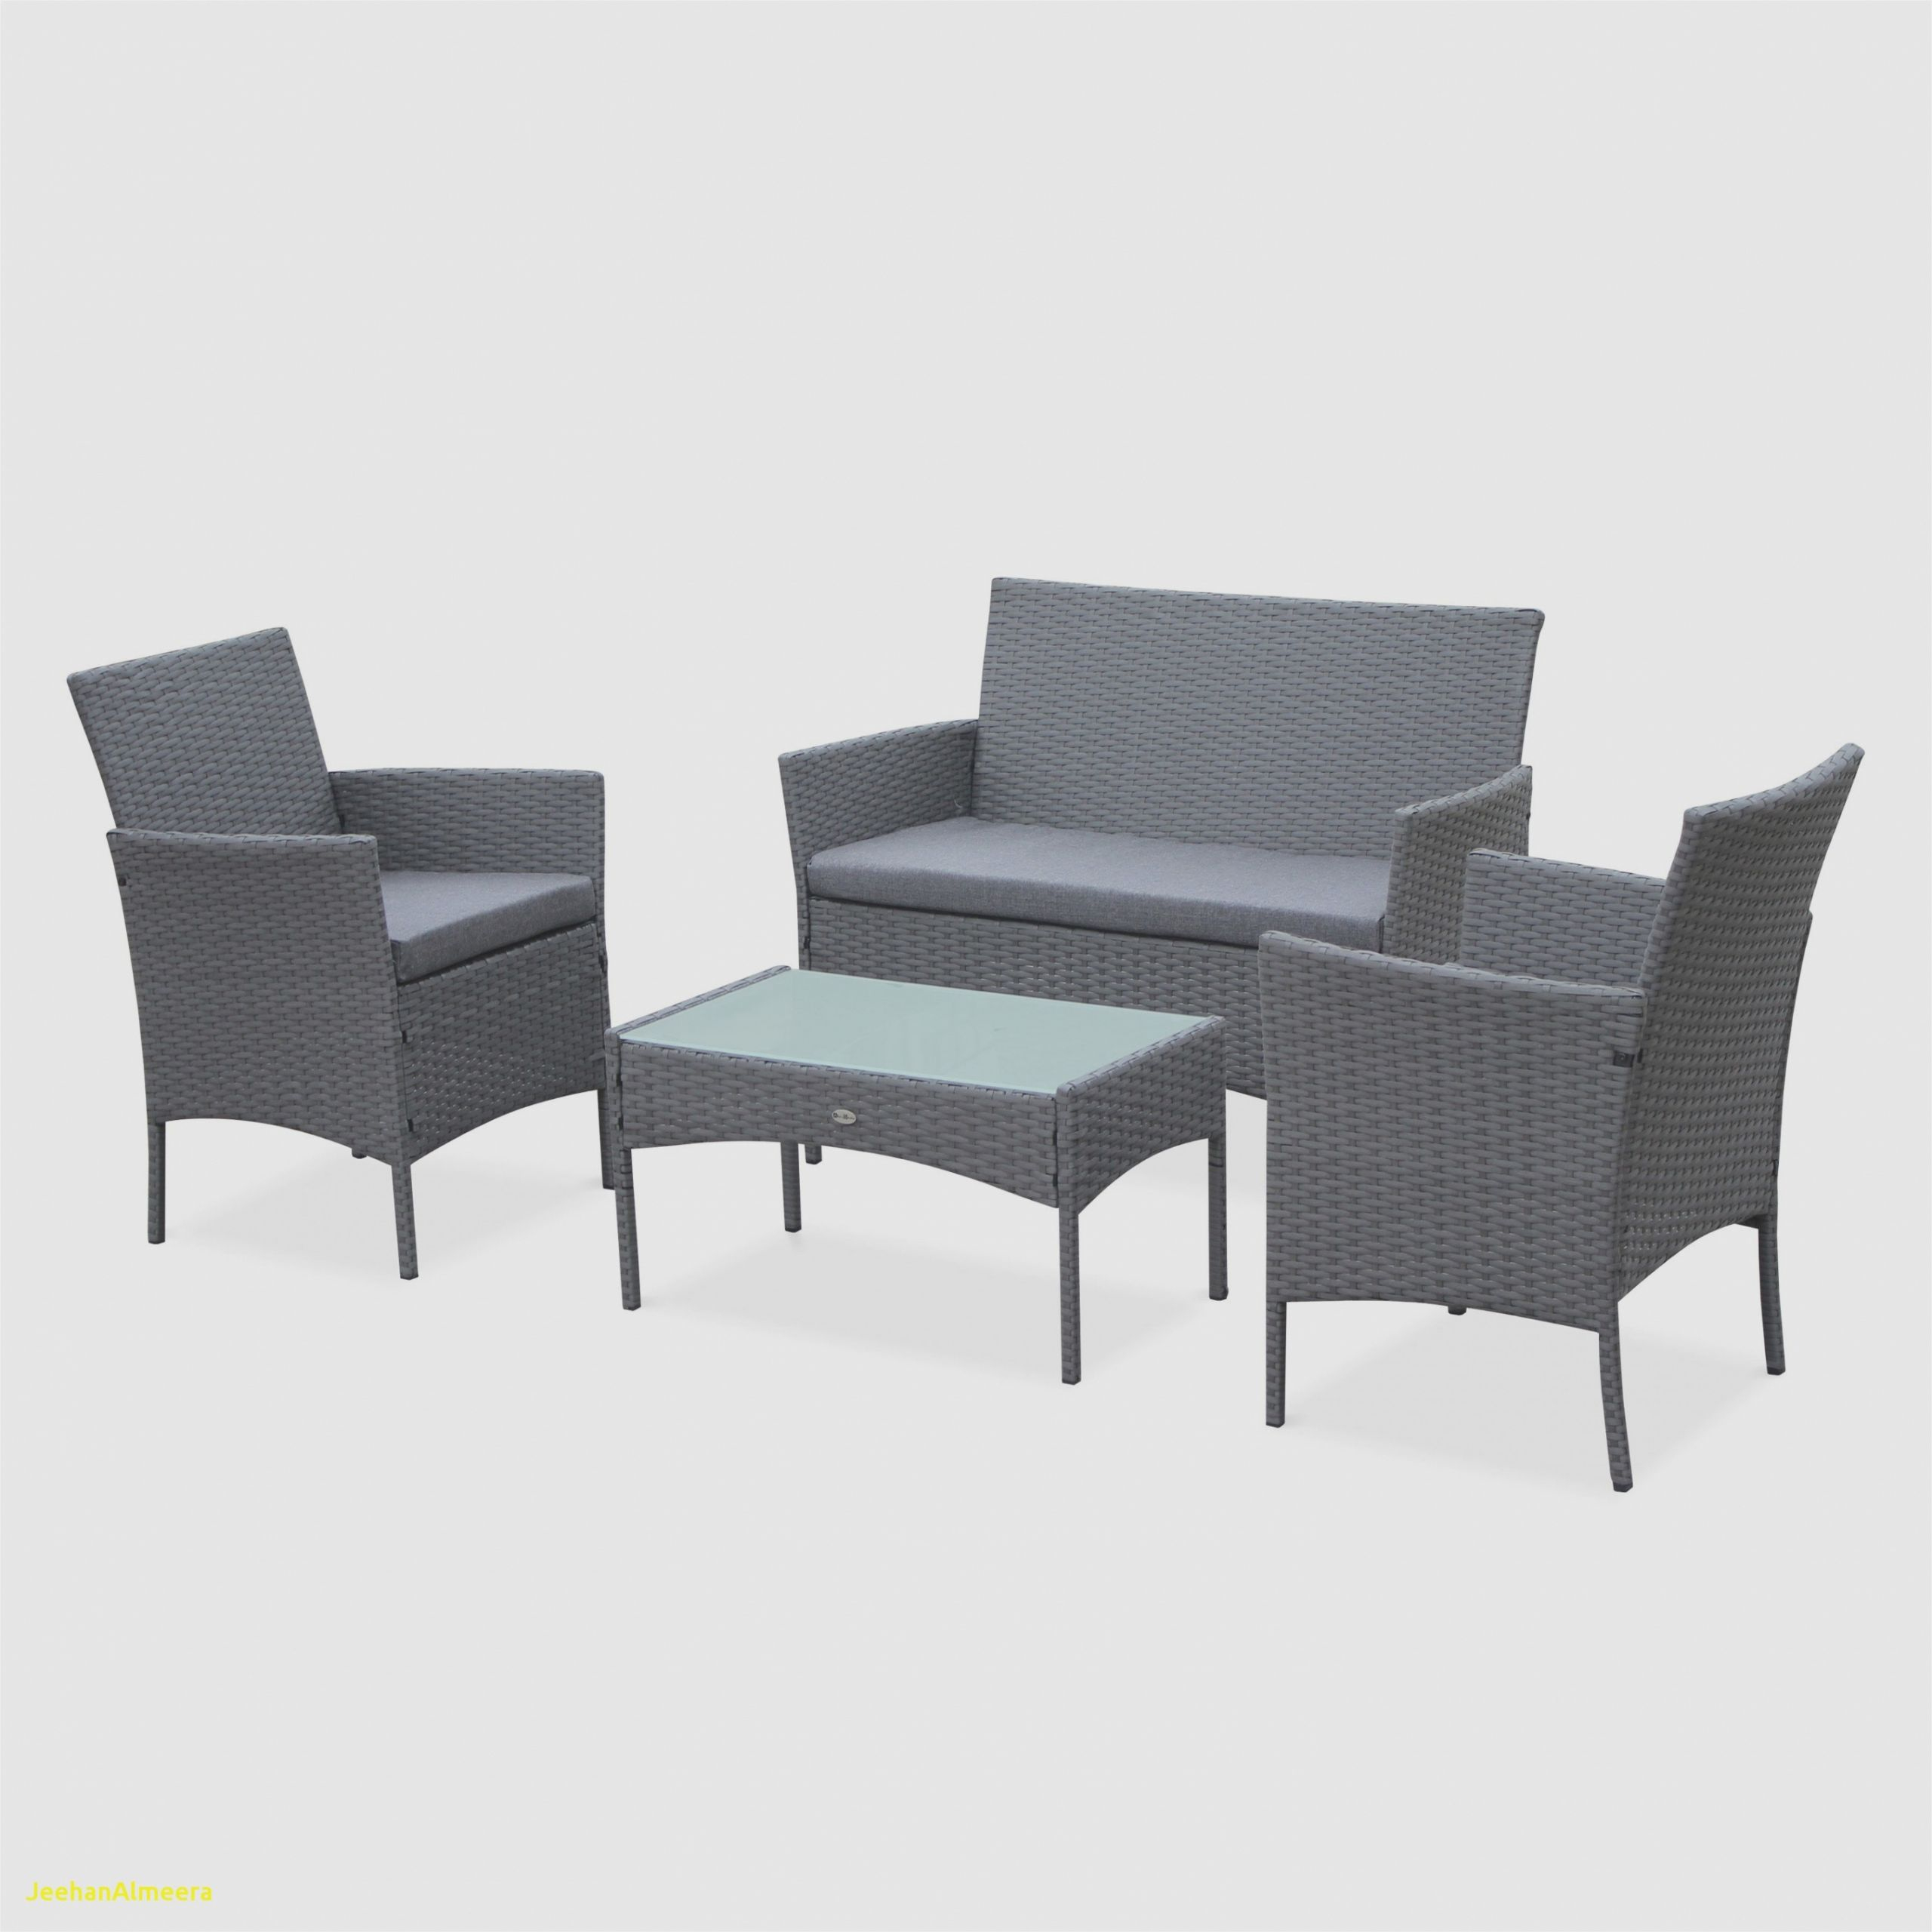 Chaise Exterieur Pas Cher Best Of Table Chaise De Jardin ... tout Table Et Chaises De Jardin Pas Cher